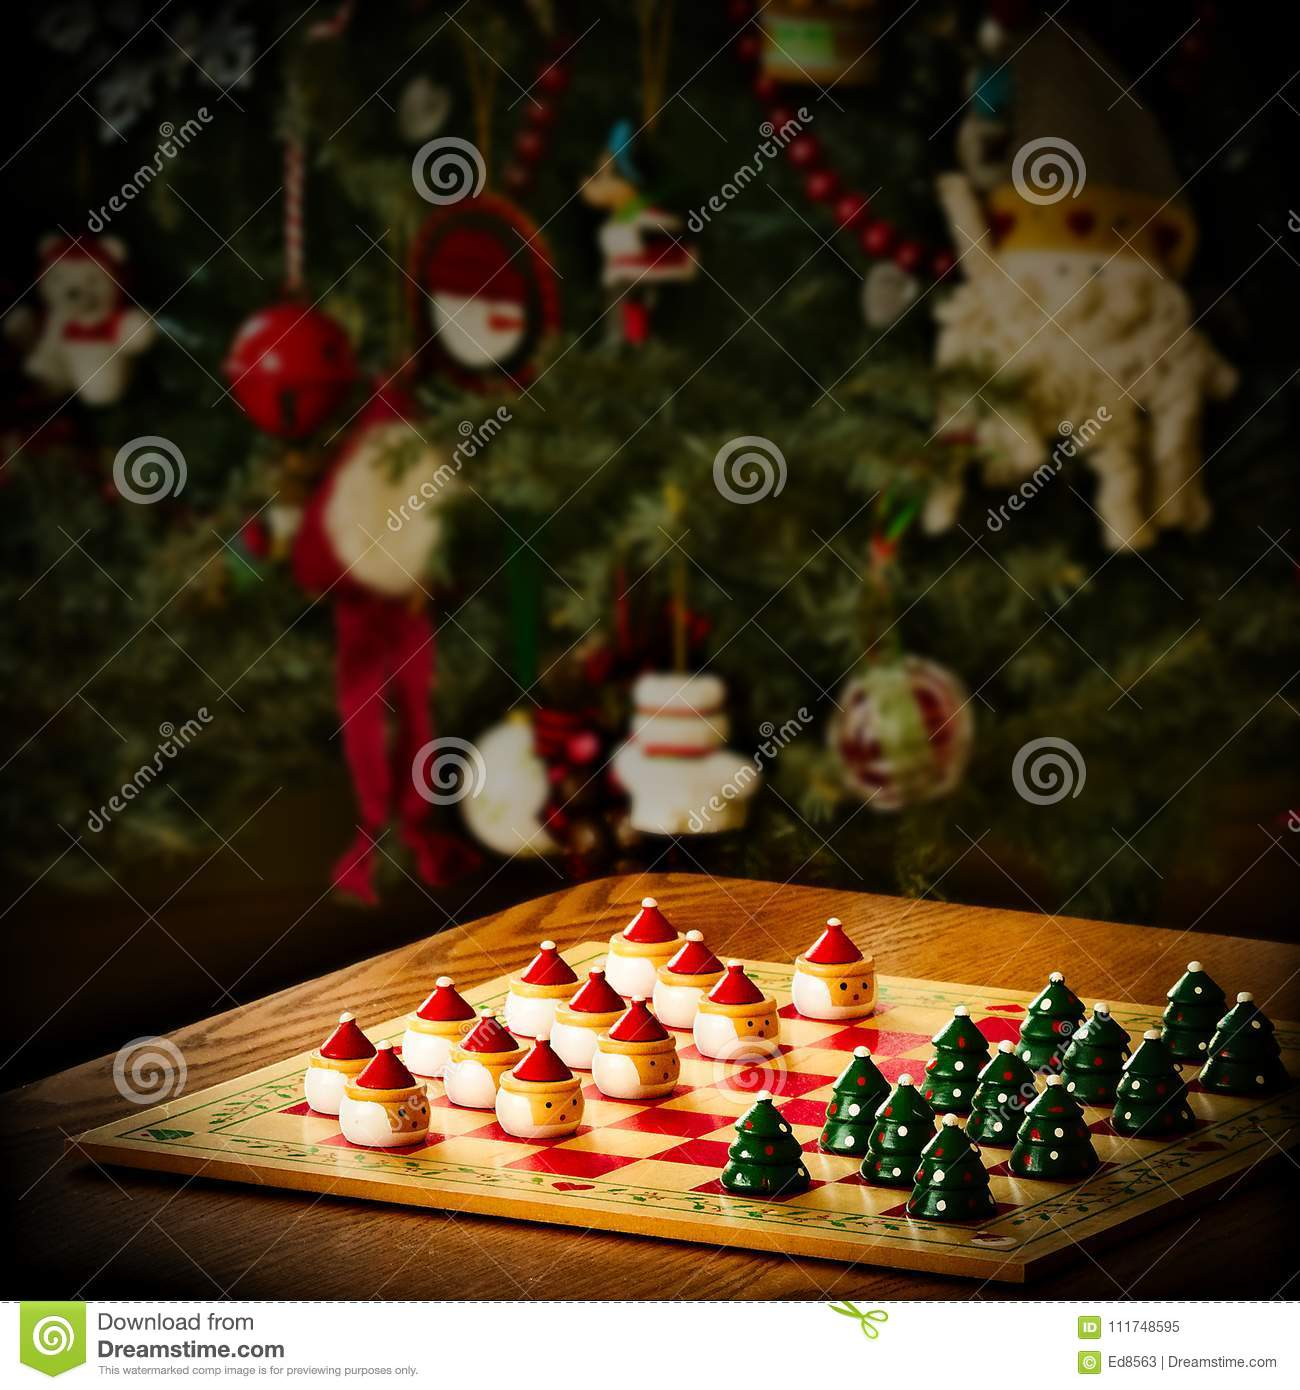 download christmas holiday checker board game and tree decorations stock image image of activity